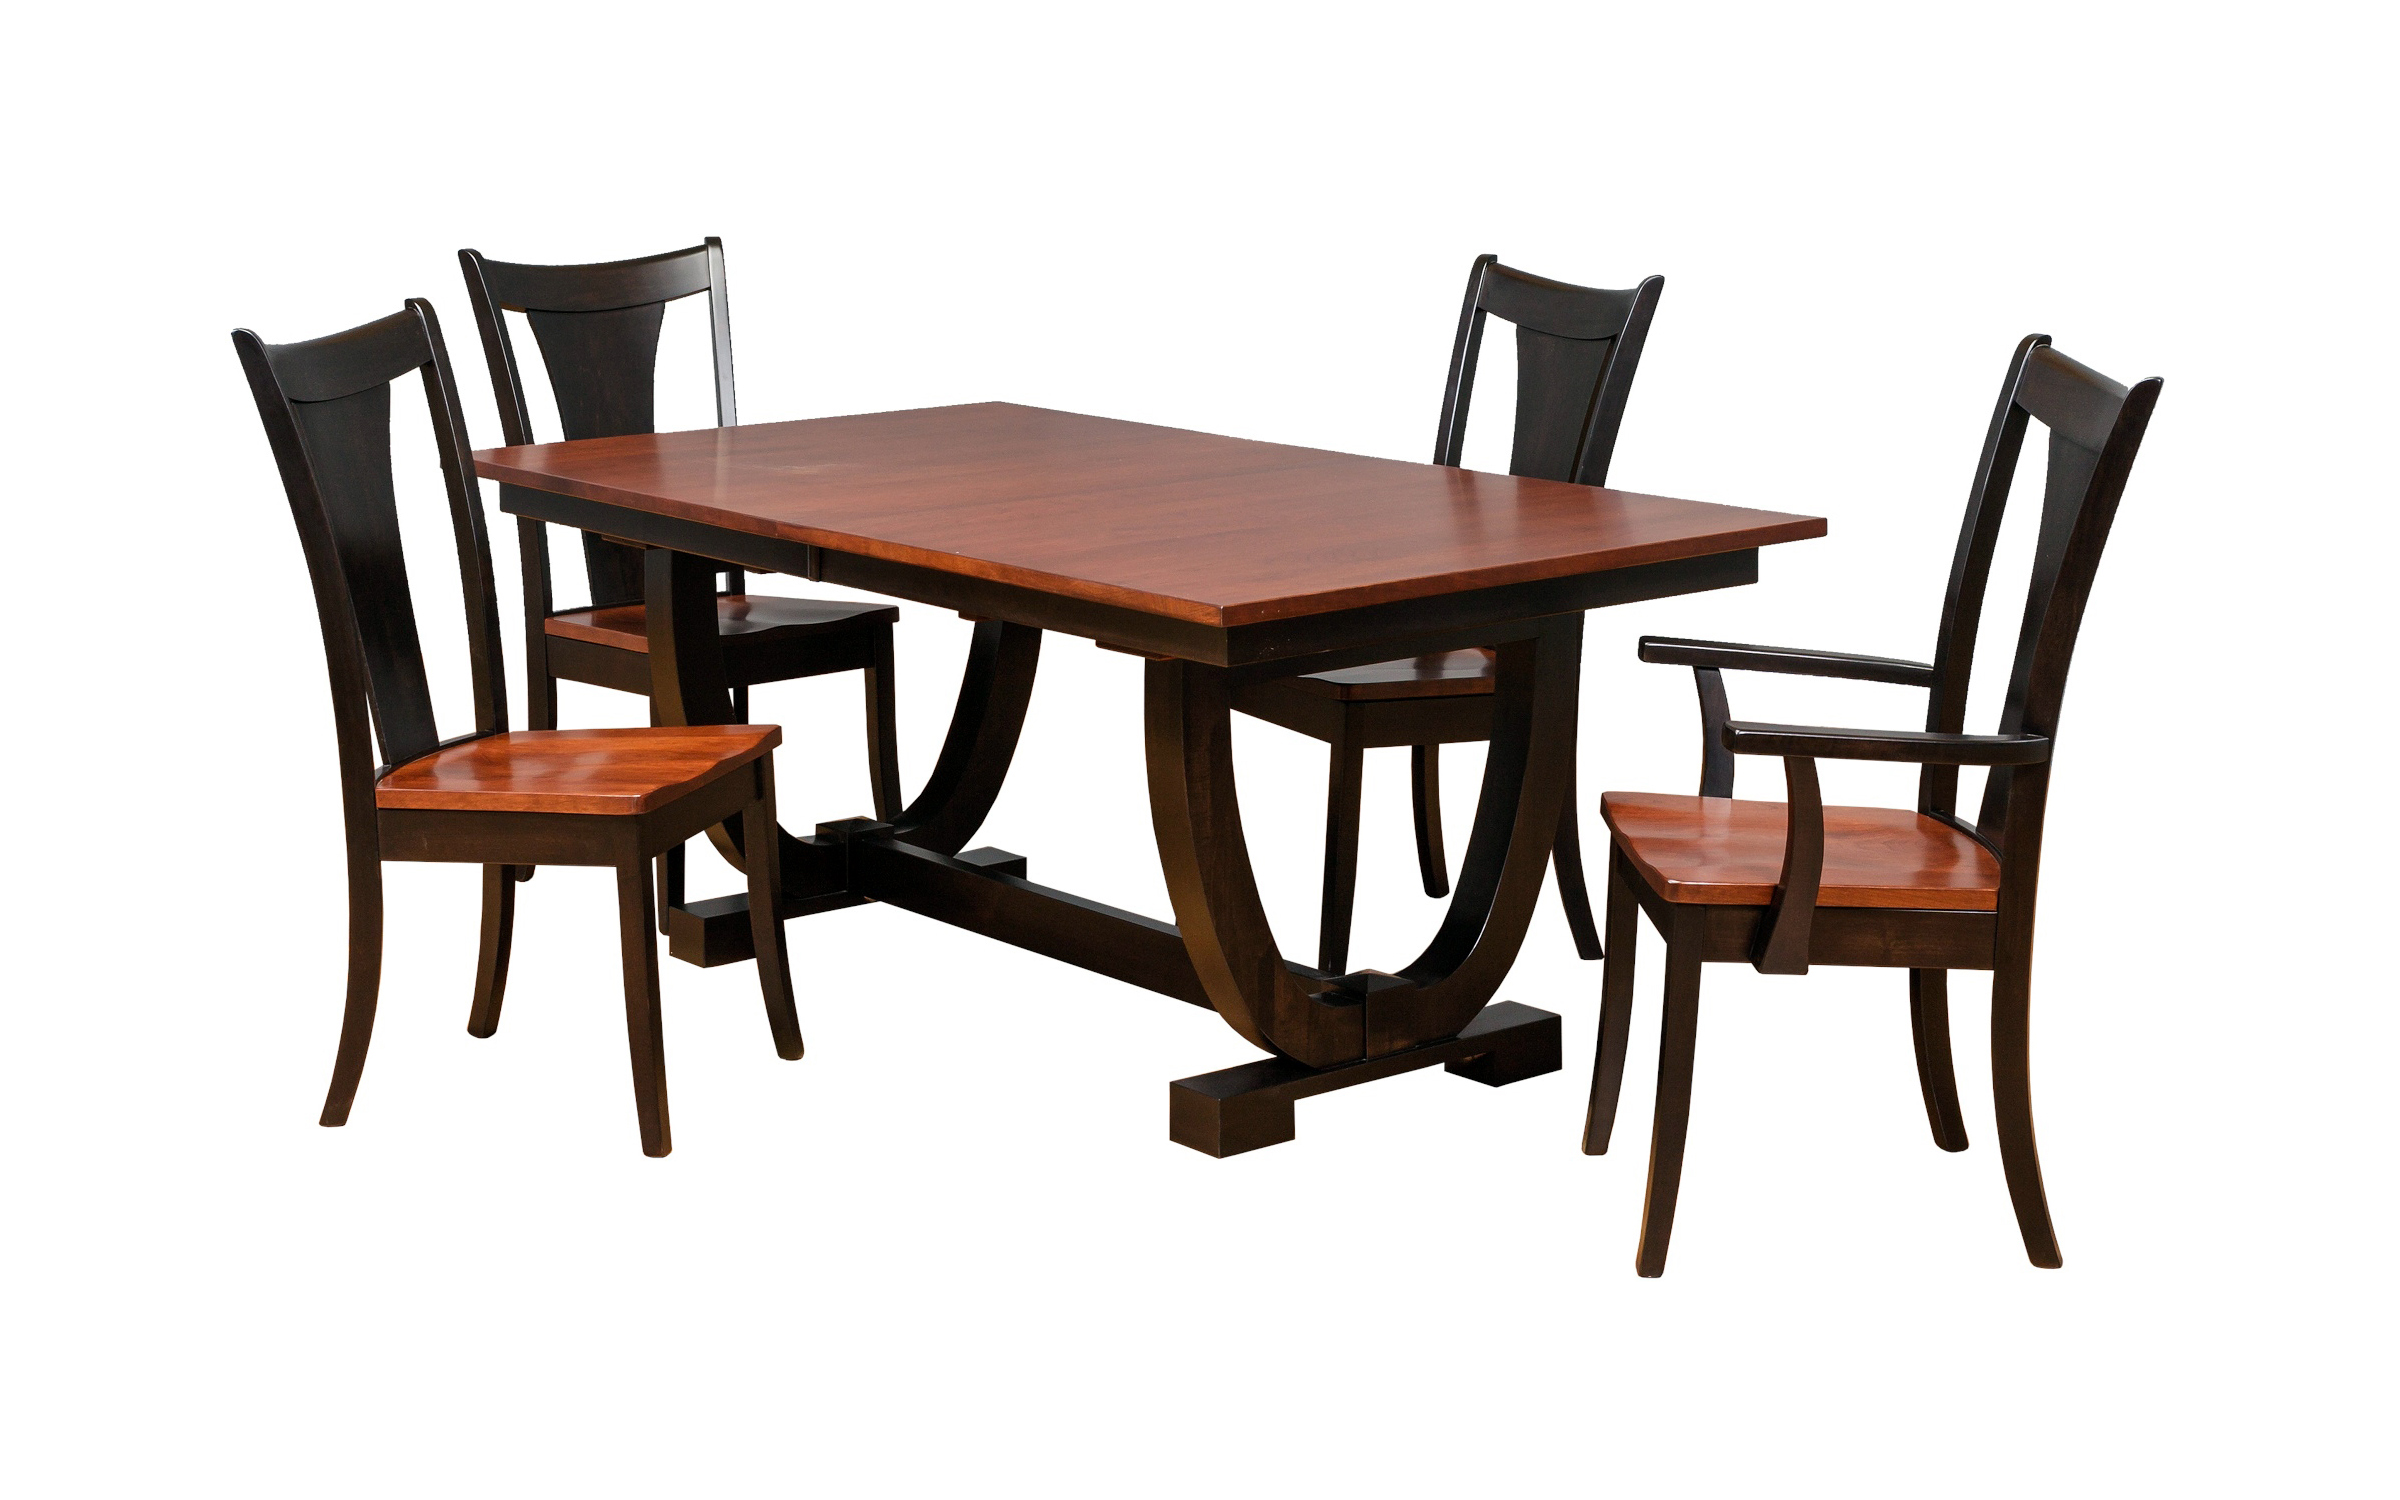 Dining Room Sets Nashua Nh Cosmopolitan Aged Cherry Dining Room Double Pedestal Table Lance